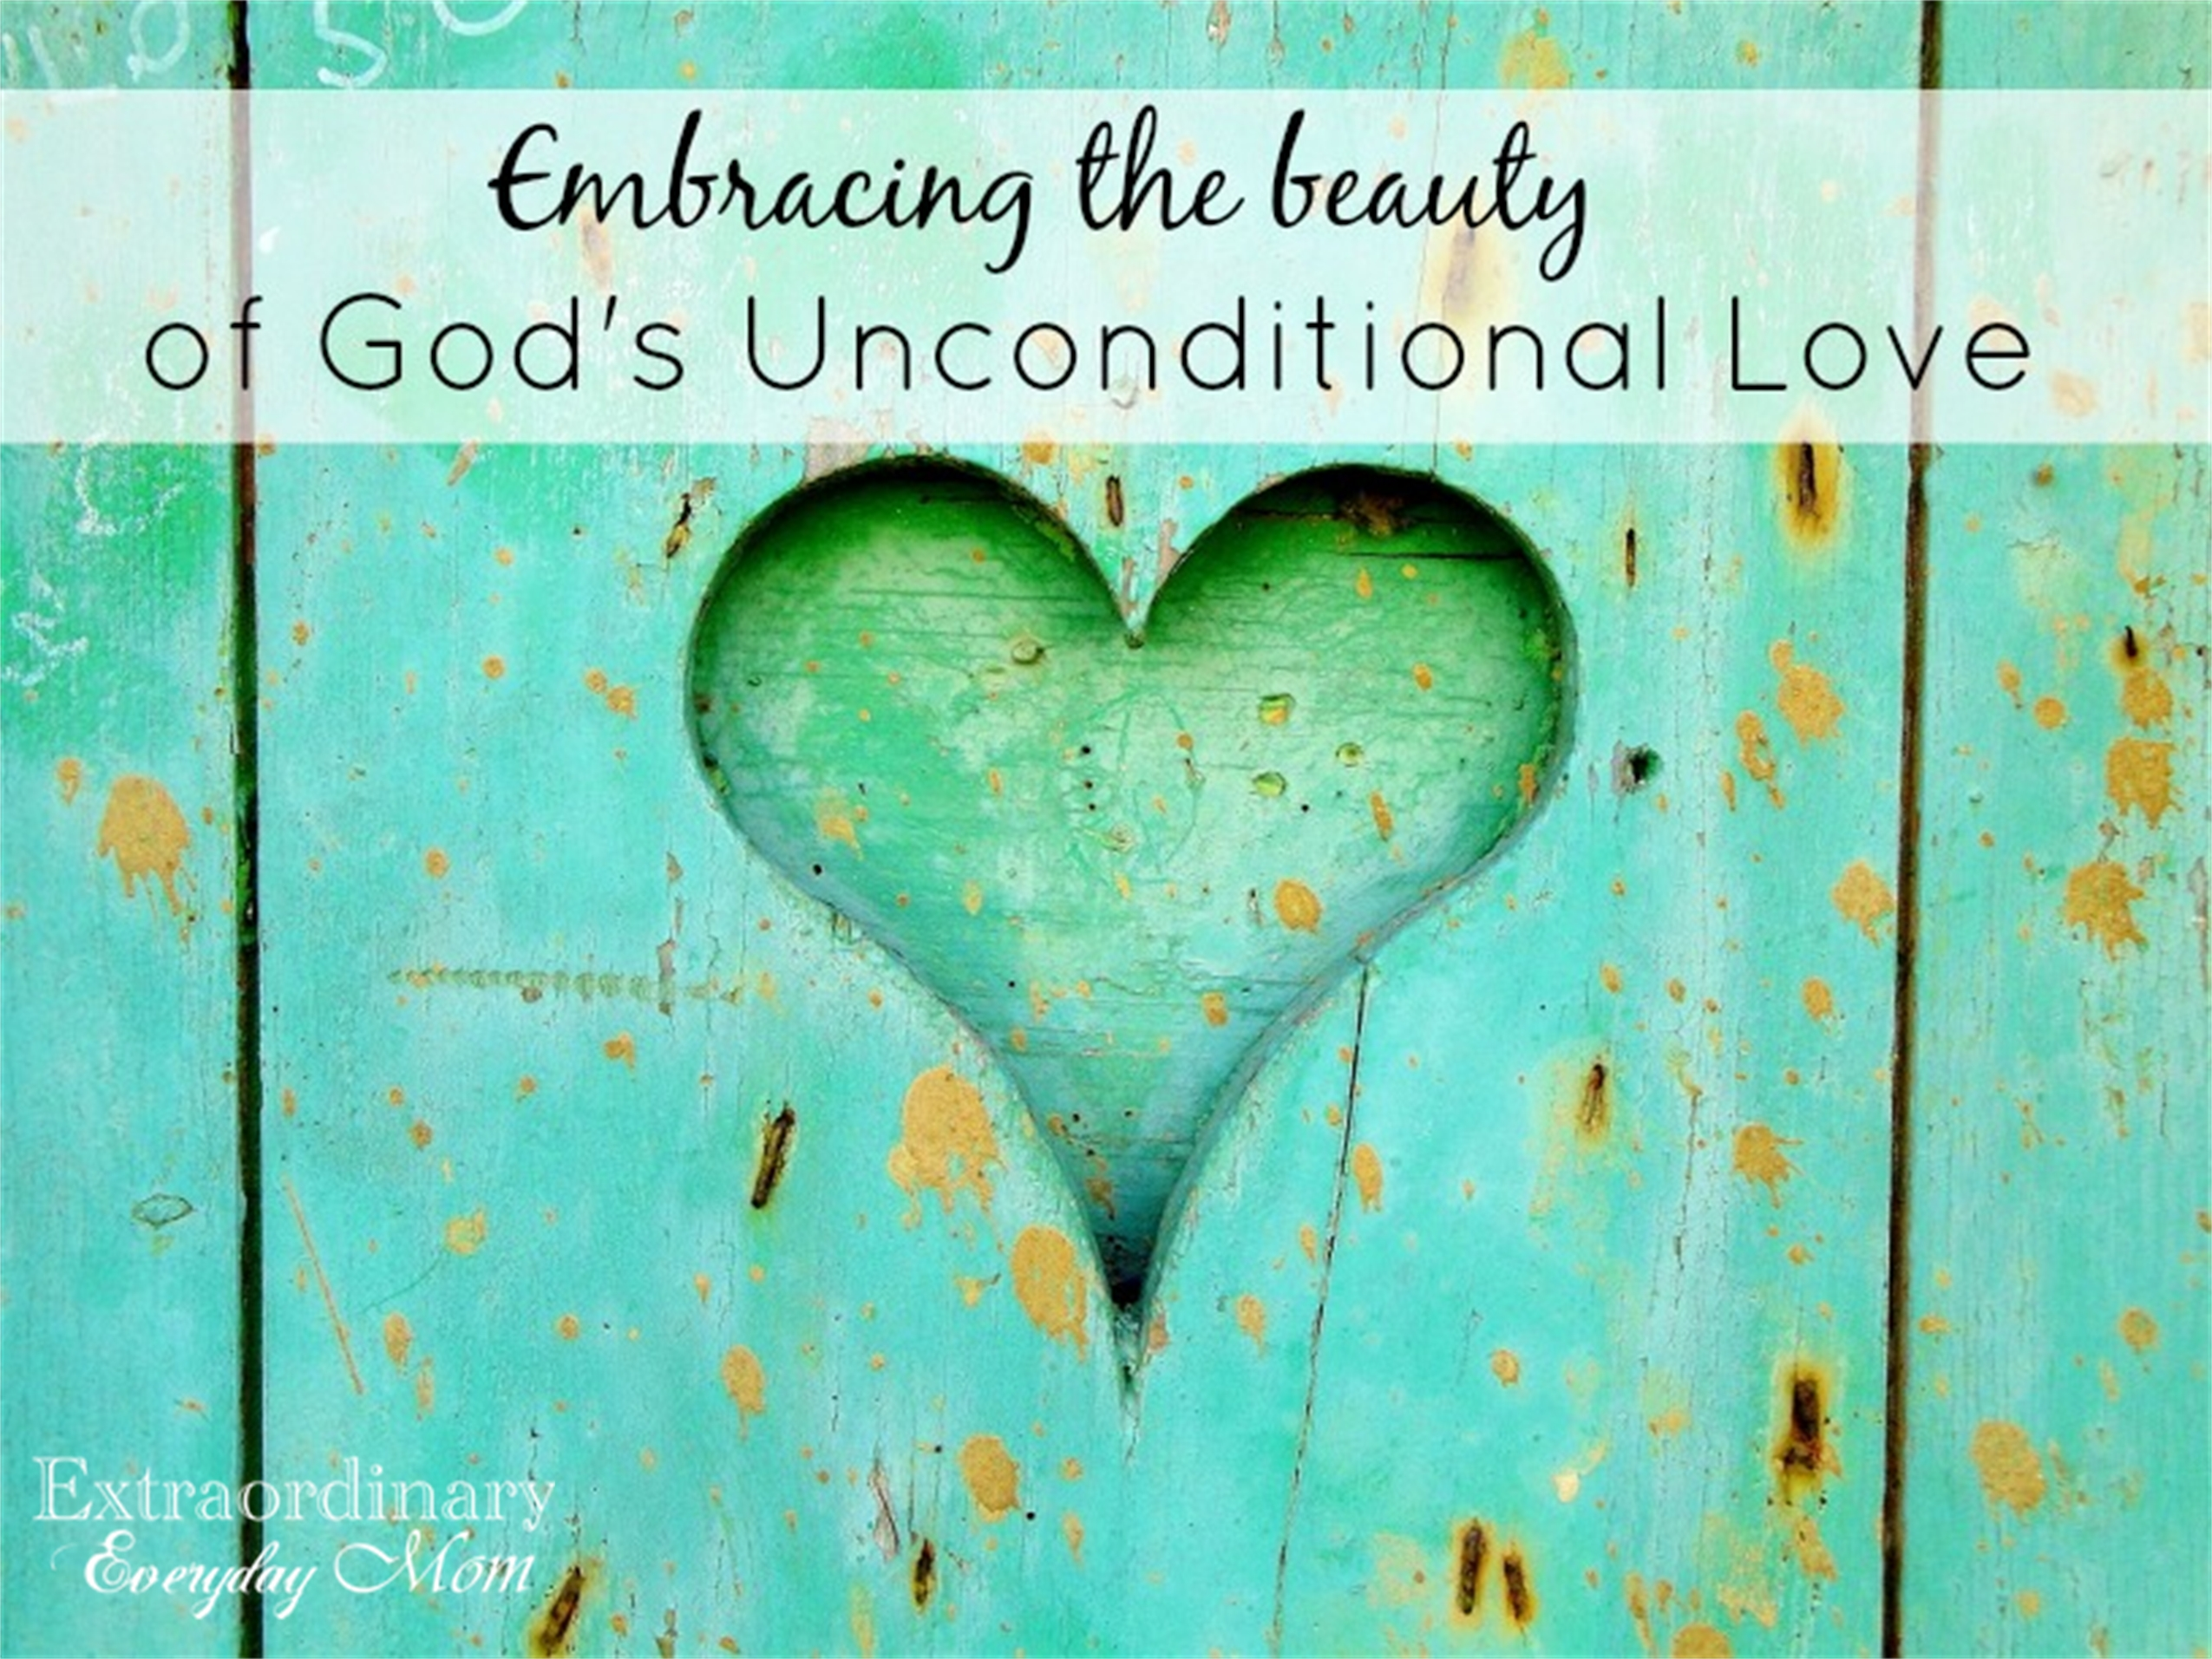 Embracing the Beauty of God's Unconditional Love